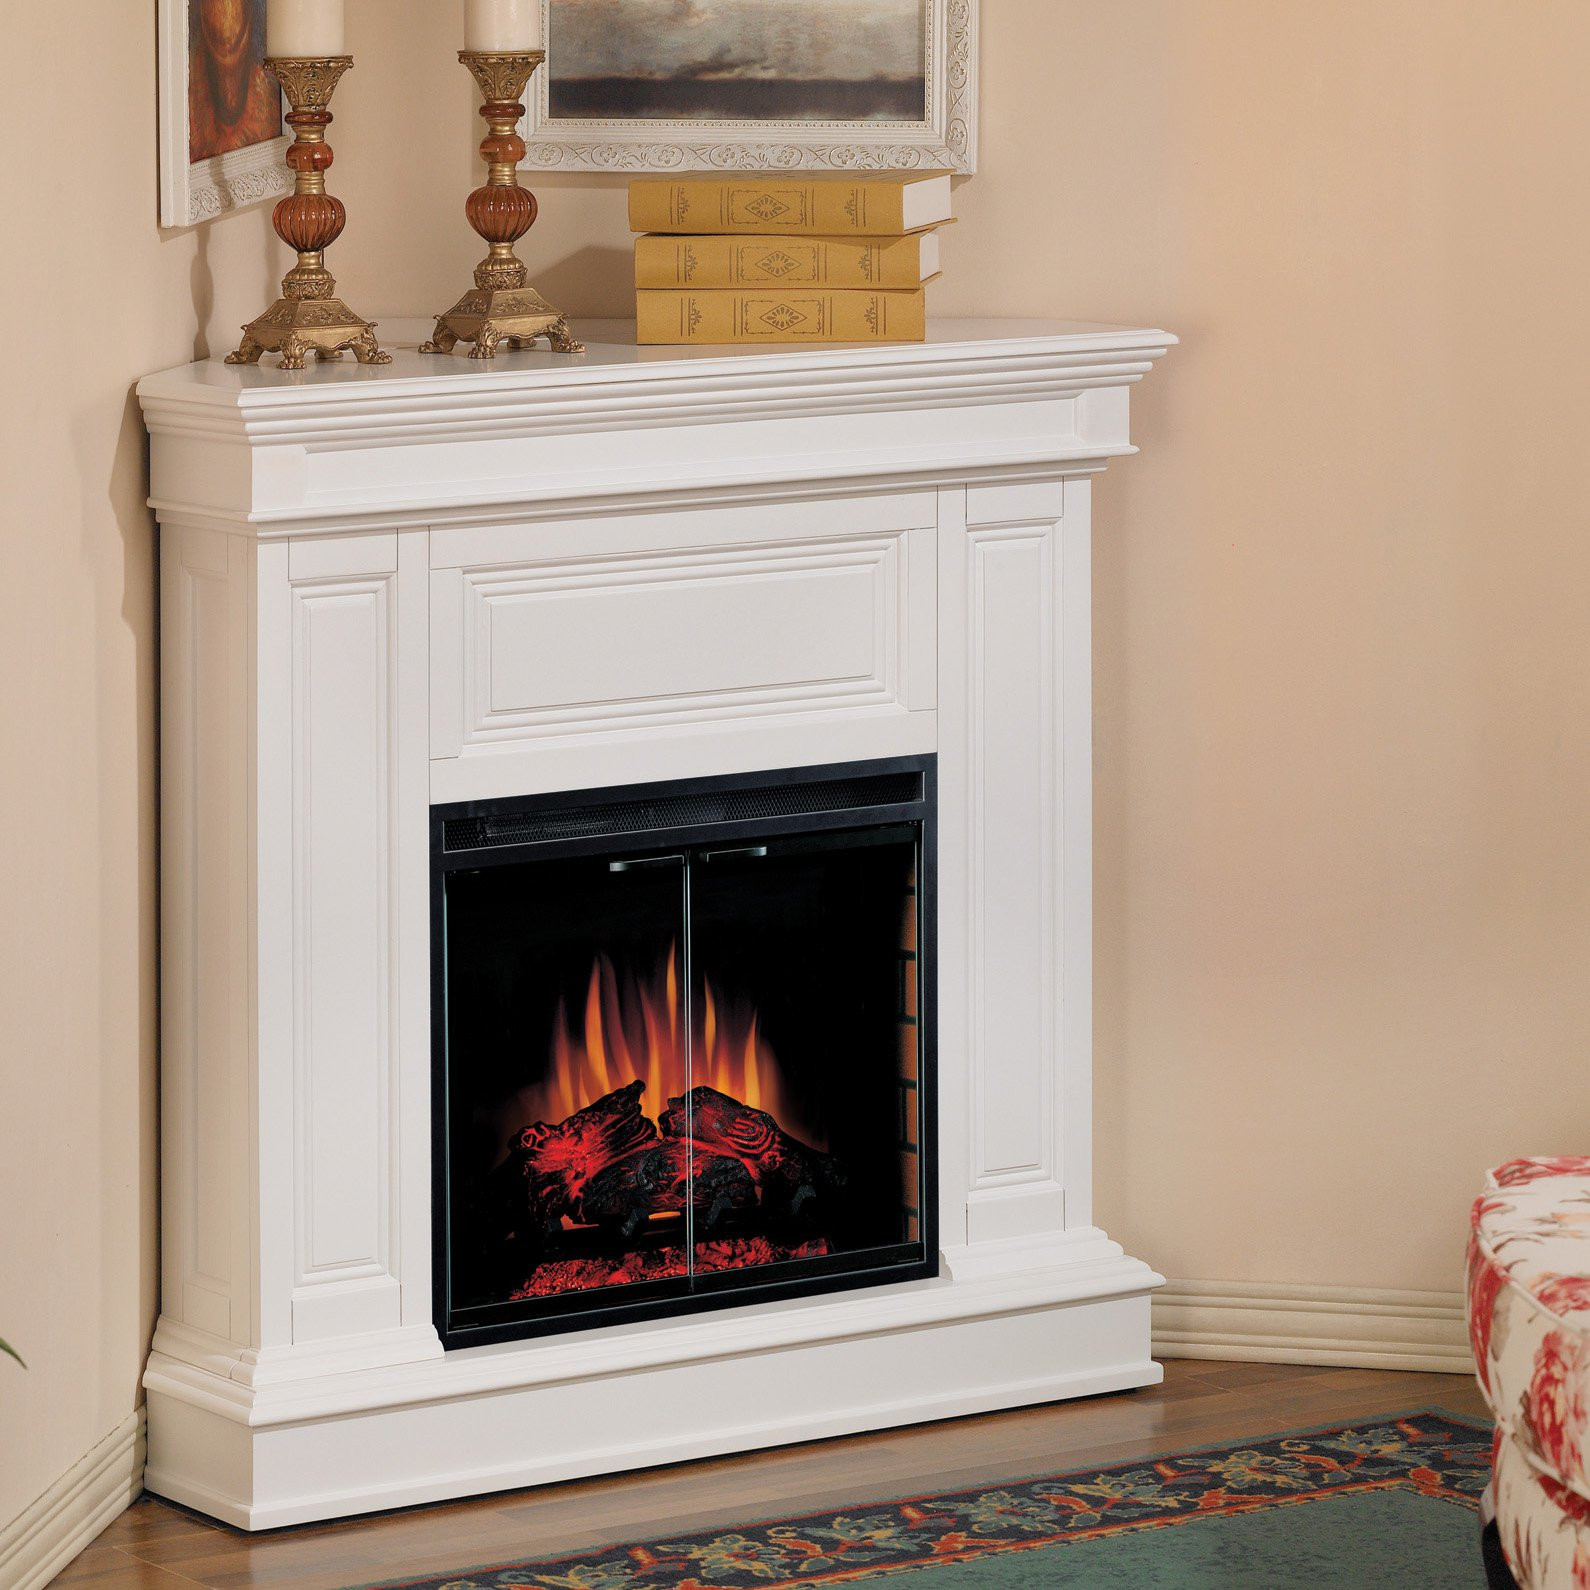 Best ideas about Small Electric Fireplace . Save or Pin White Small Electric Fireplaces — Kokoazik Home Designs Now.